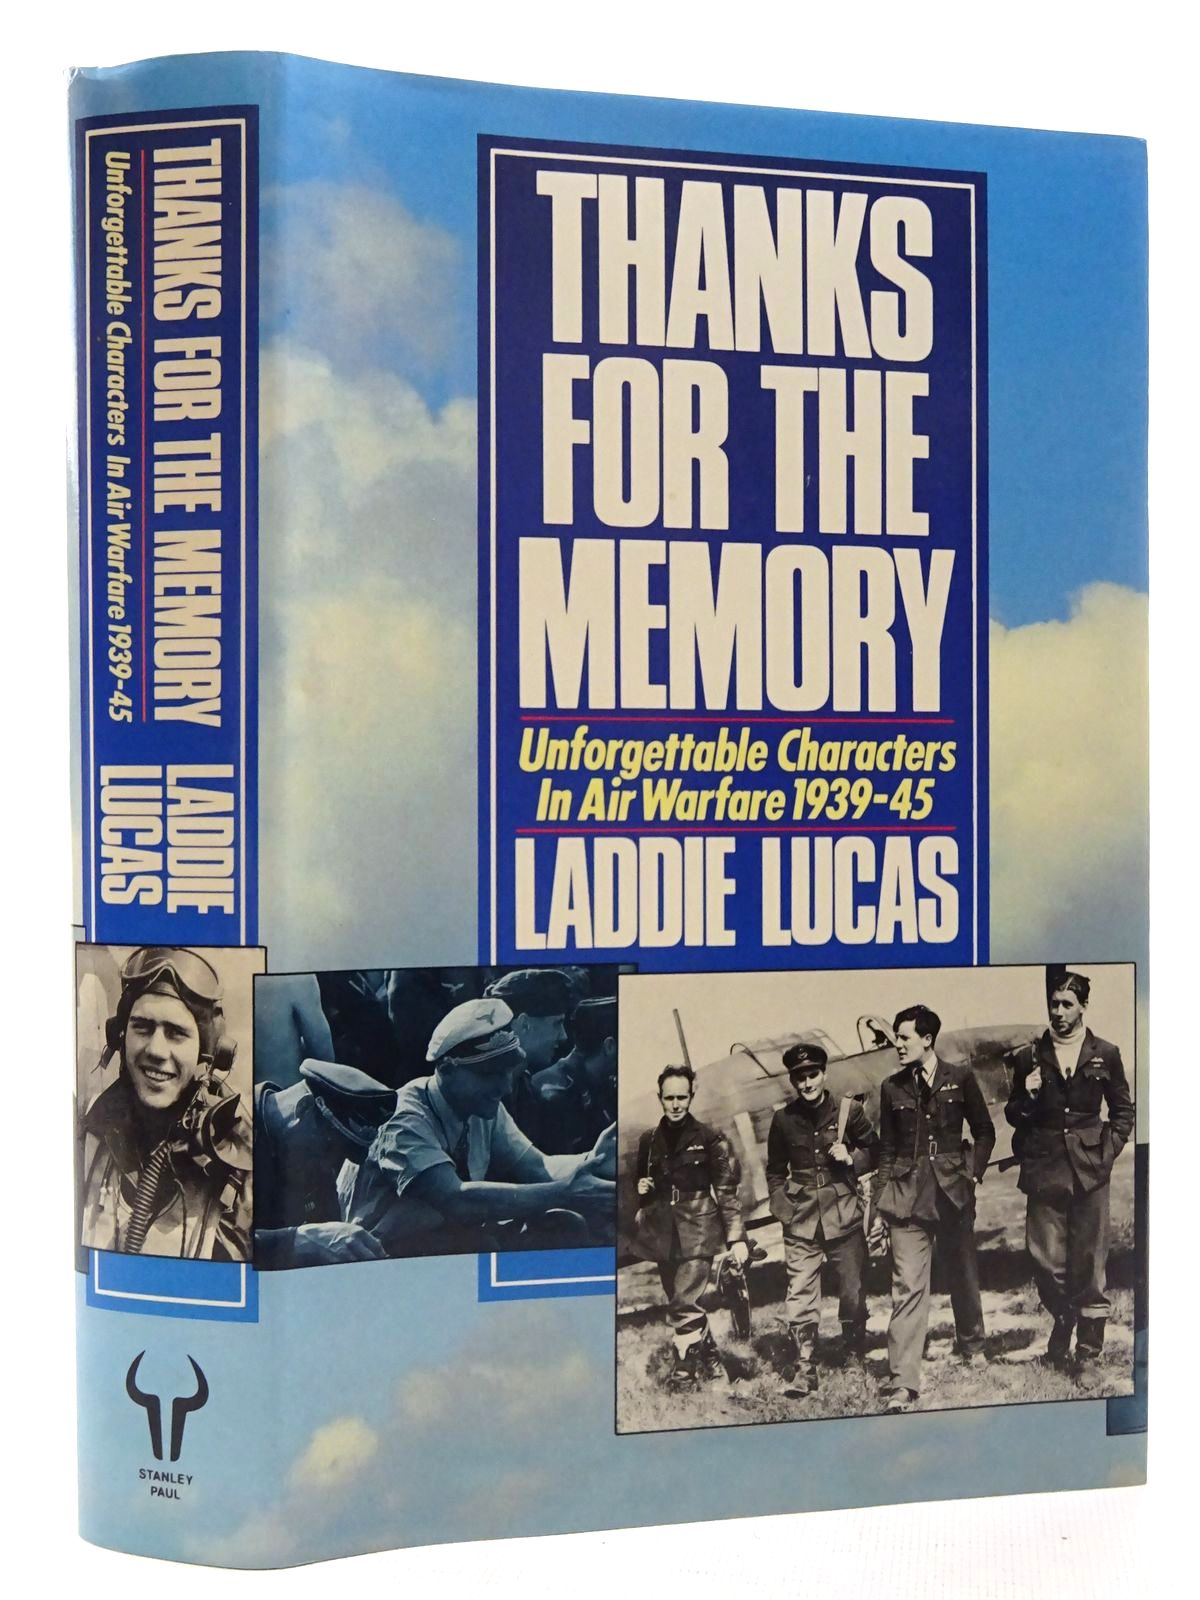 Photo of THANKS FOR THE MEMORY UNFORGETTABLE CHARACTERS IN AIR WARFARE 1939-1945 written by Lucas, Laddie published by Stanley Paul (STOCK CODE: 2124810)  for sale by Stella & Rose's Books